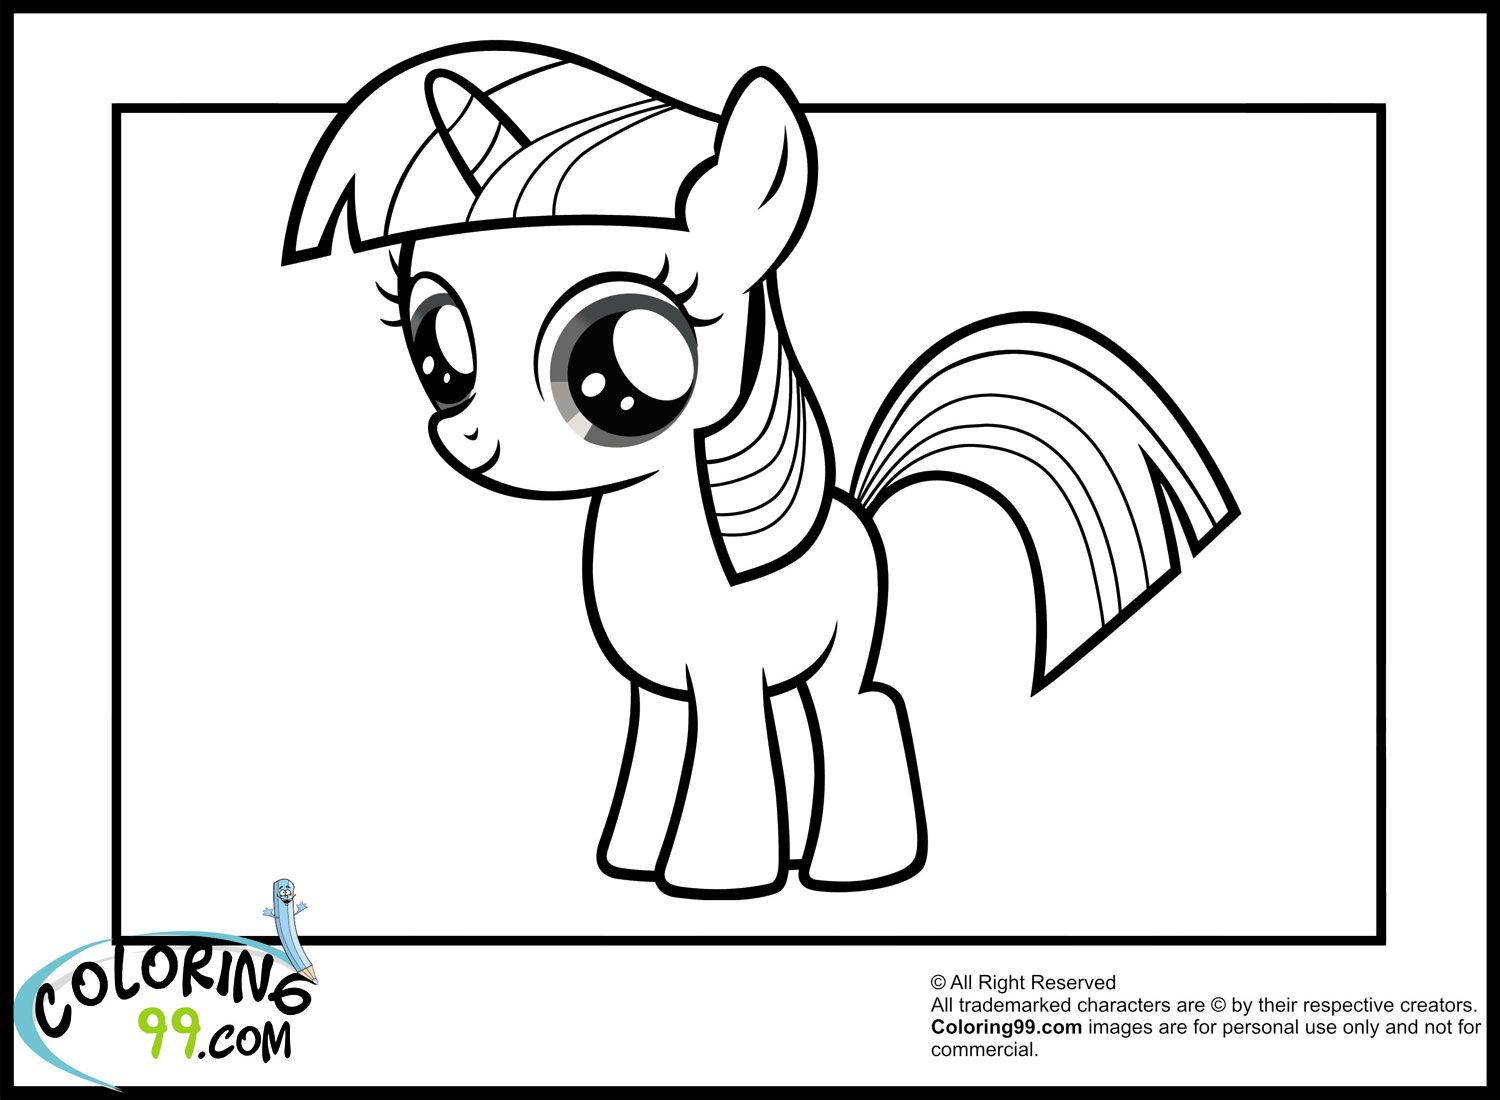 Young my little pony coloring pages - My Little Pony Young Twilight Sparkle Coloring Pages